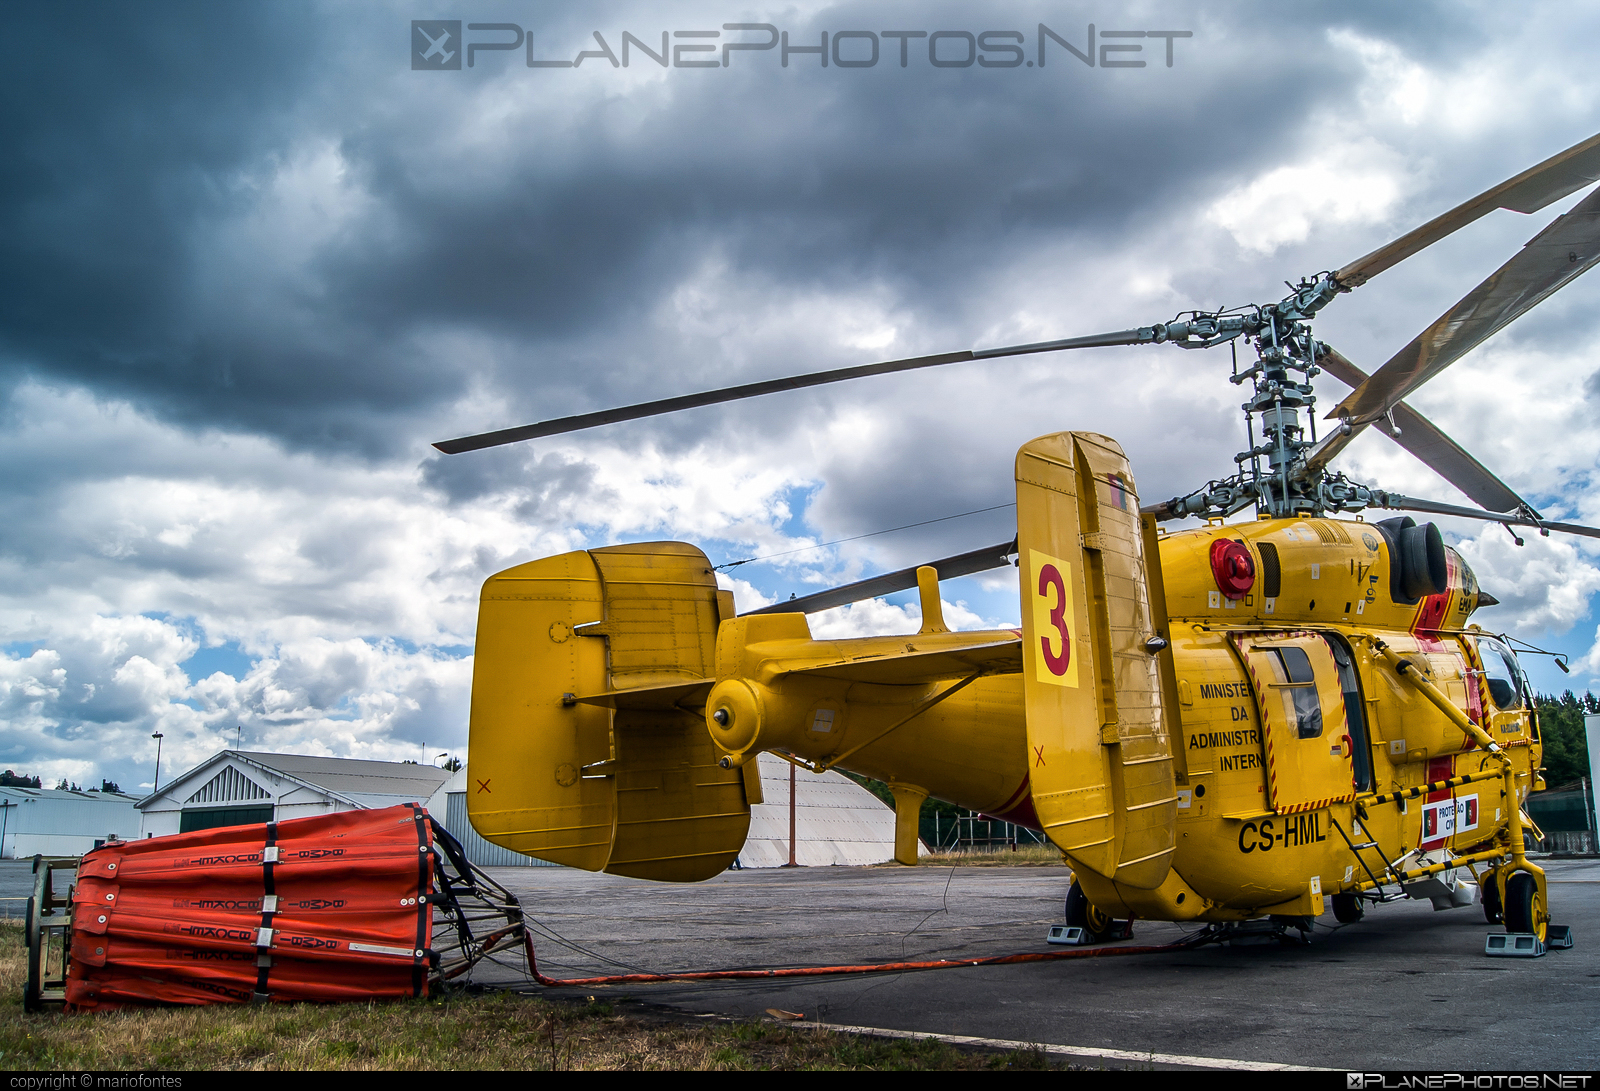 Kamov Ka-32A11BC - CS-HML operated by Proteção Civil (Portugal Civil Protection) #ka32 #ka32a11bc #kamov #kamov32 #kamovka32 #portugalcivilprotection #protecaocivil